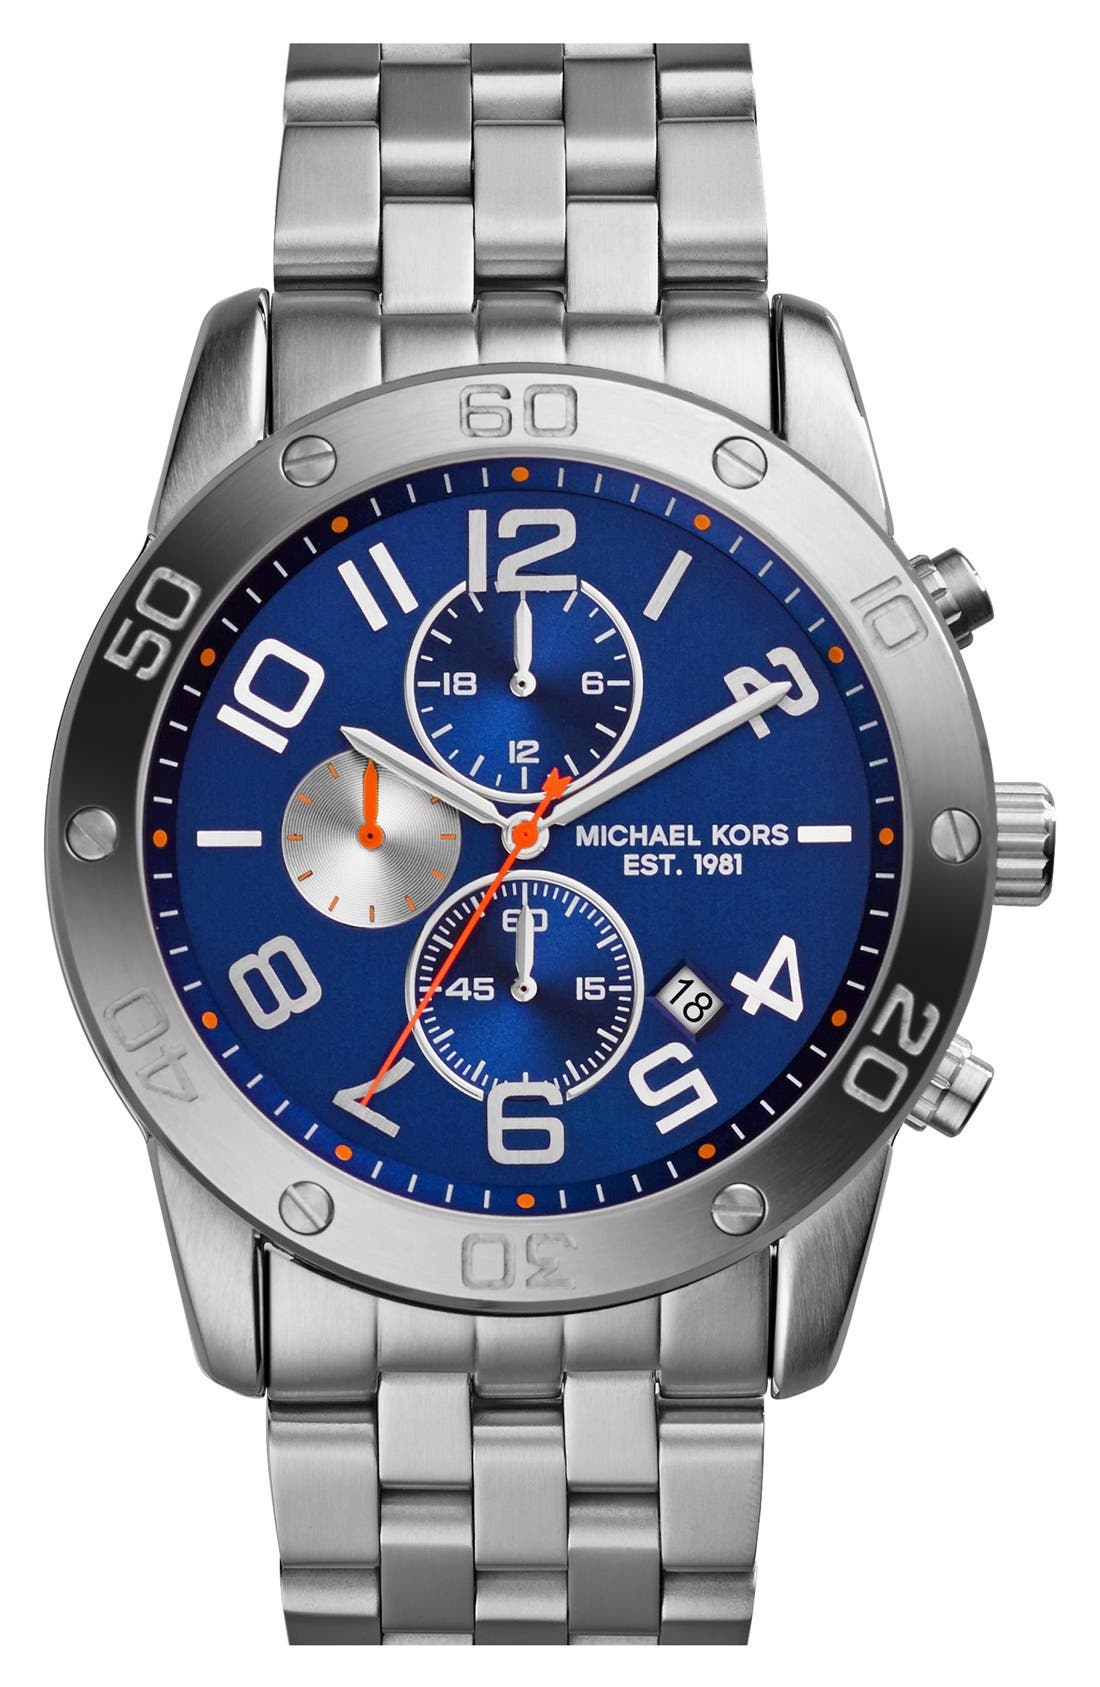 Main Image - Michael Kors 'Mercer' Chronograph Bracelet Watch, 45mm